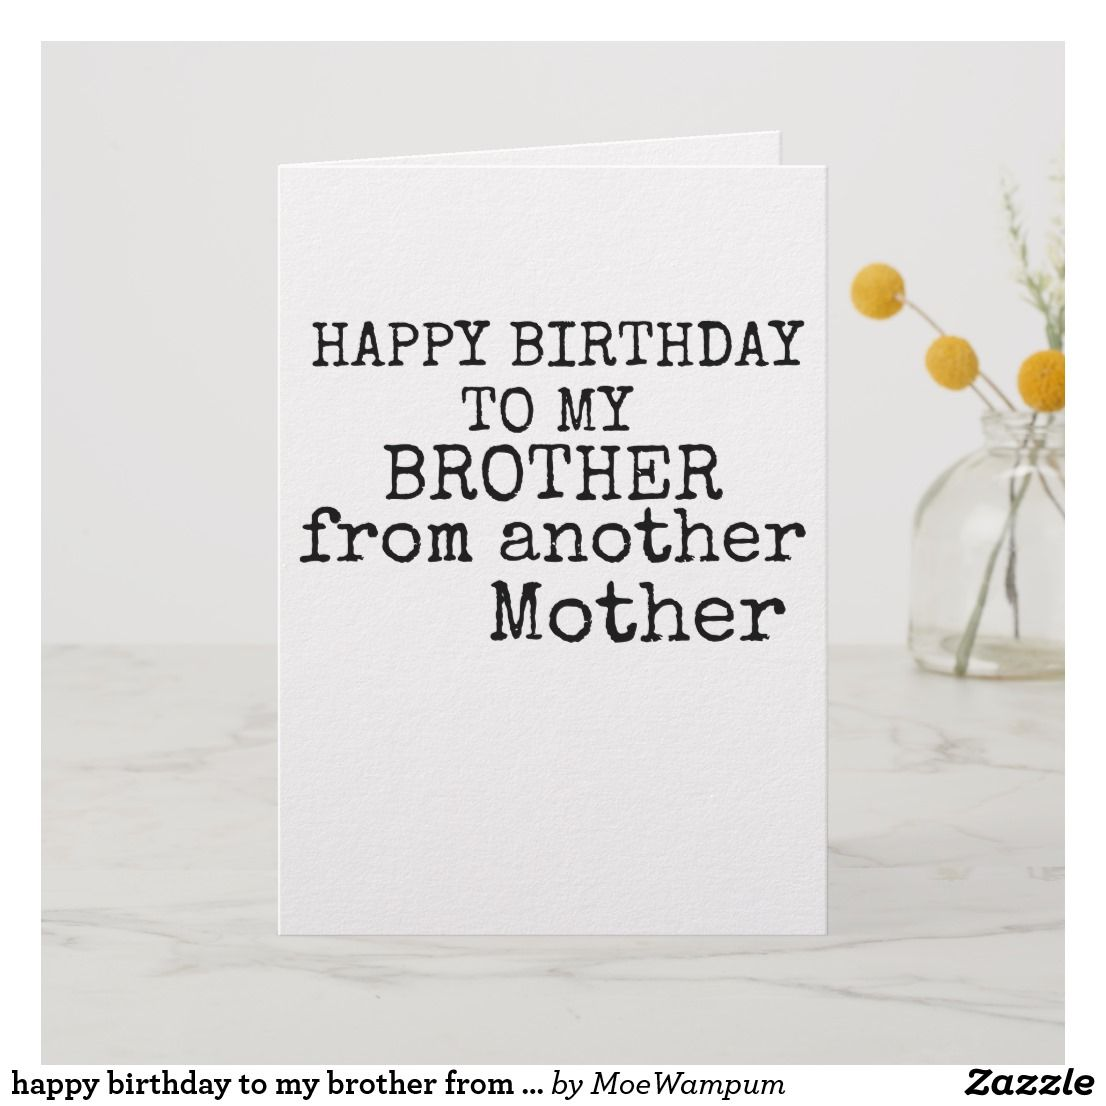 Happy Birthday To My Brother From Another Mother Card Zazzle Com In 2020 Happy Birthday Brother Birthday Message For Brother Birthday Wishes For Brother